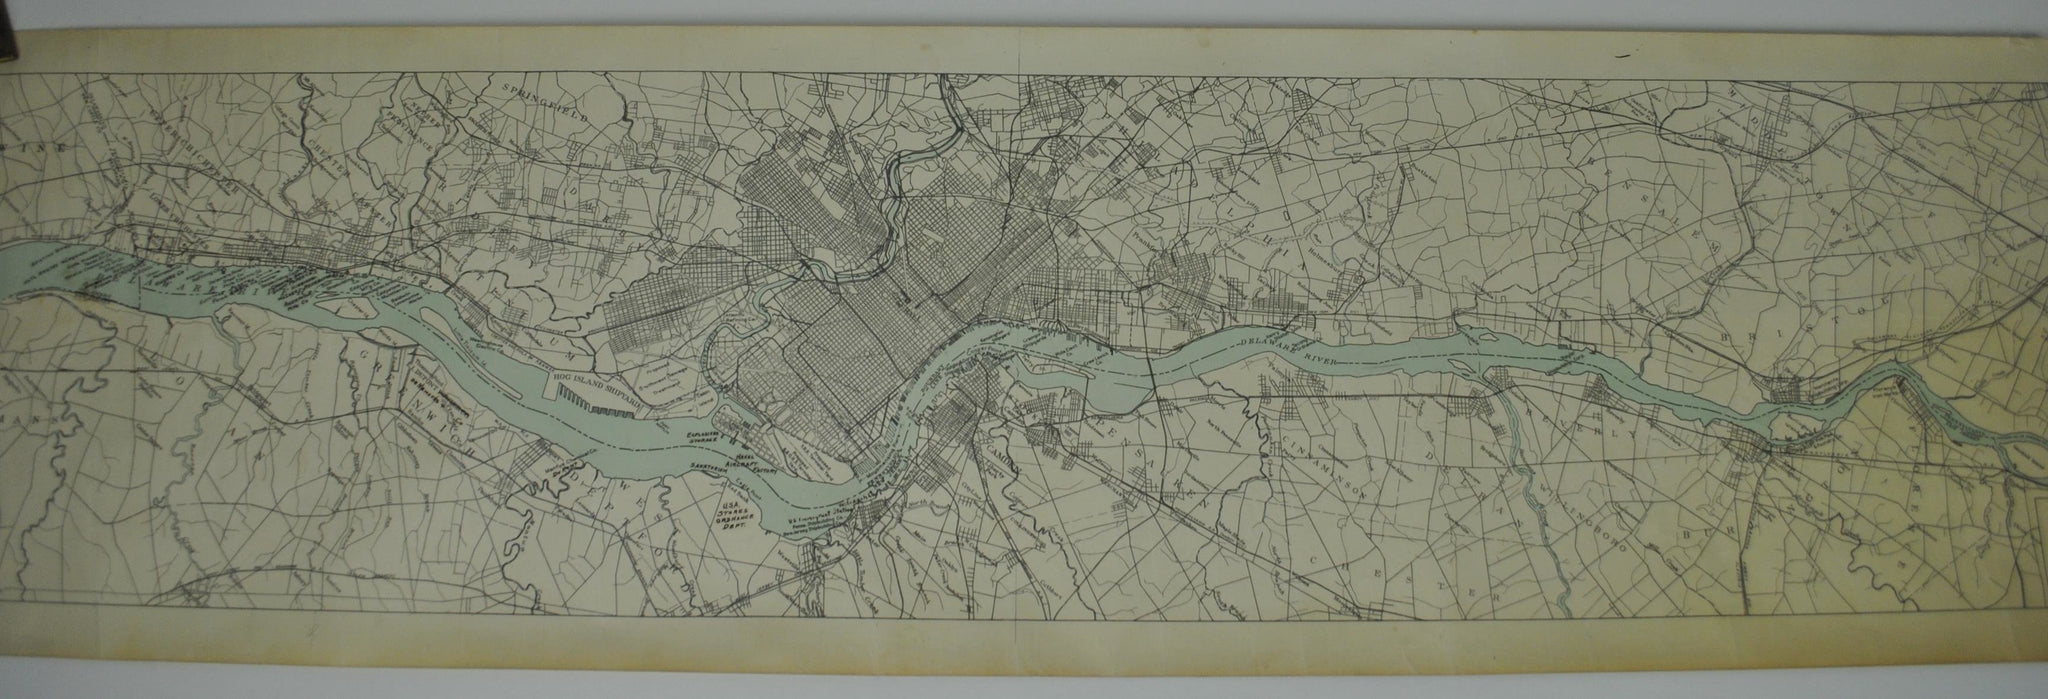 1918 Delaware River District from Trenton NJ to Wilmington Del